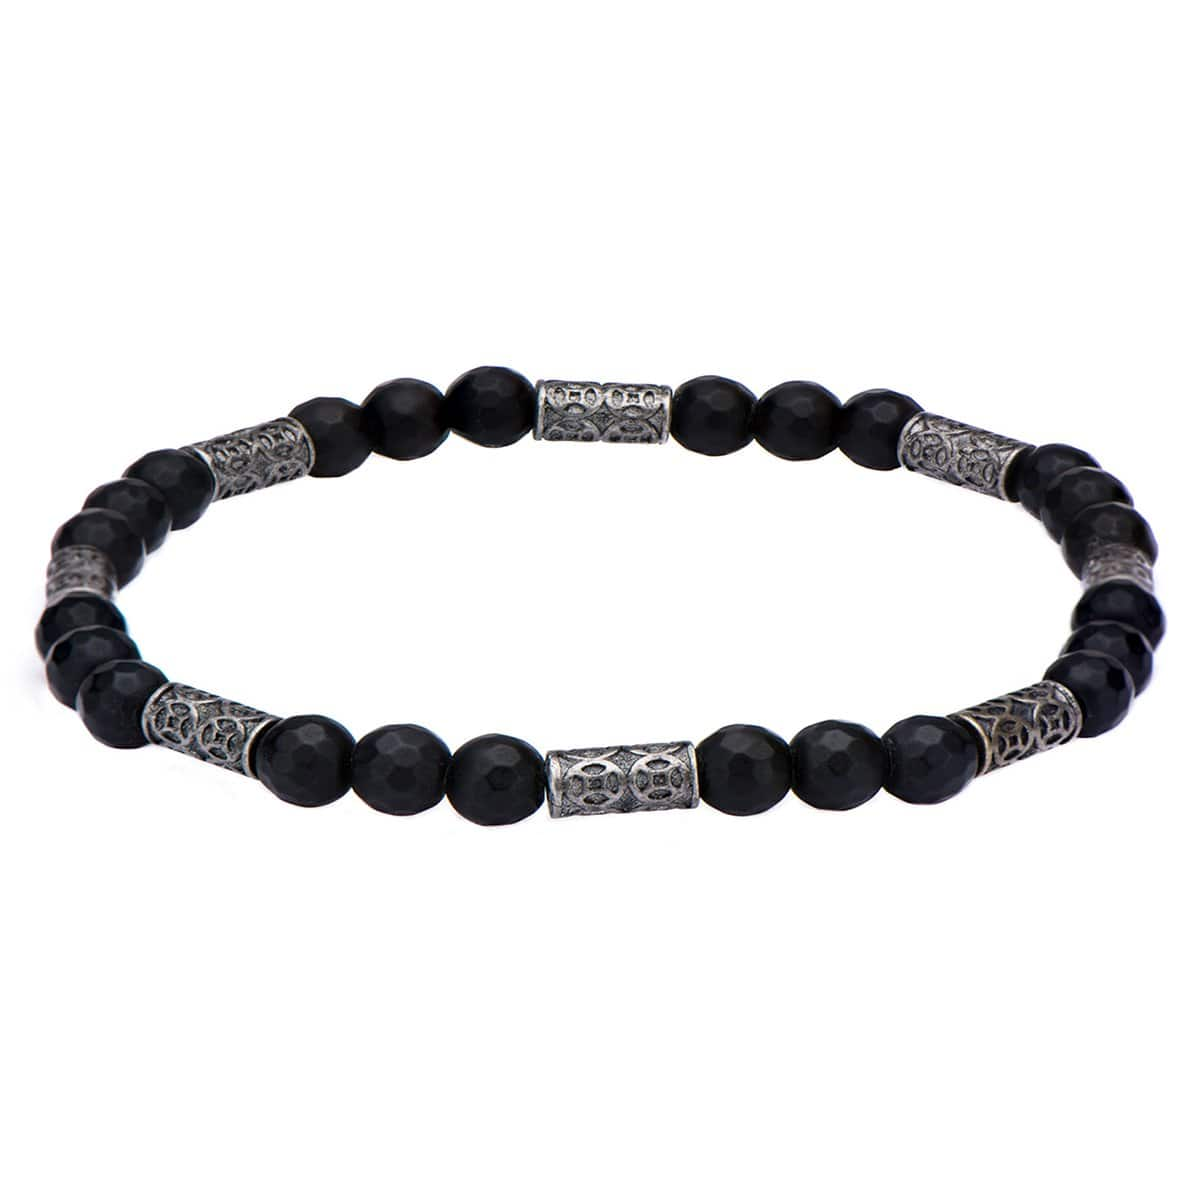 Silver Stainless Steel with Black Hematite Antique Bead Bracelet